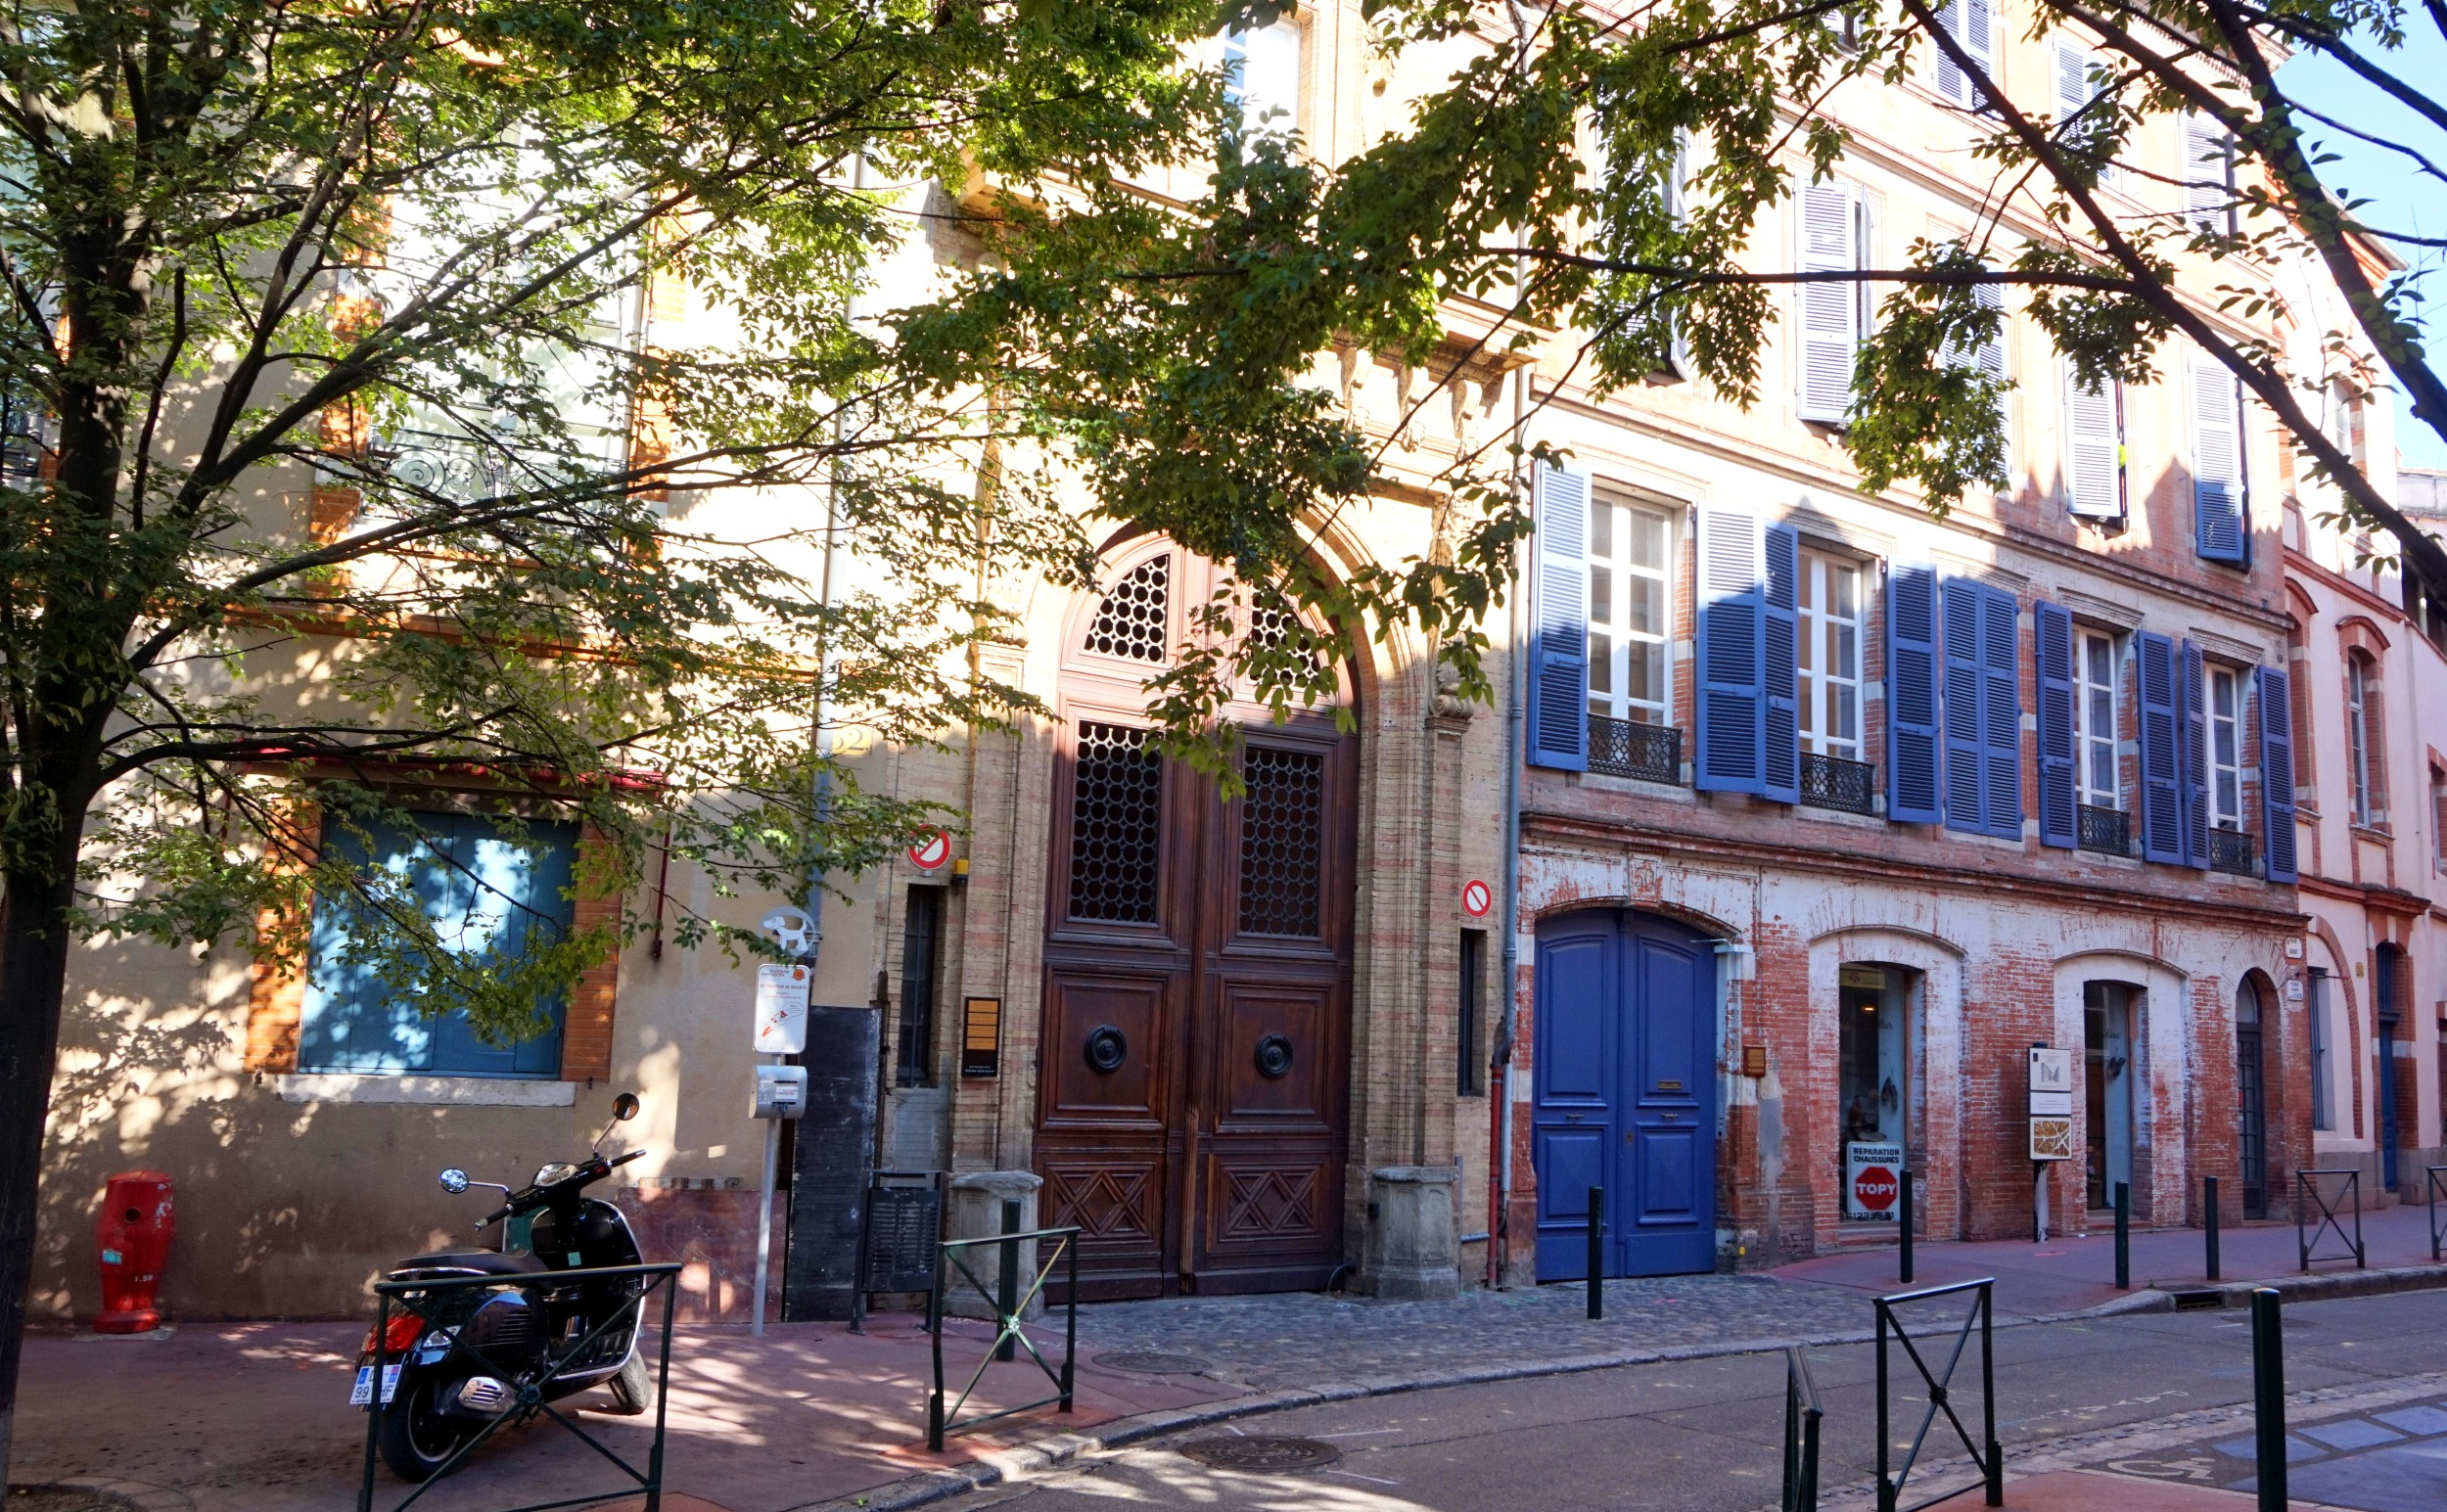 Balade-Toulouse-St-Etienne-33